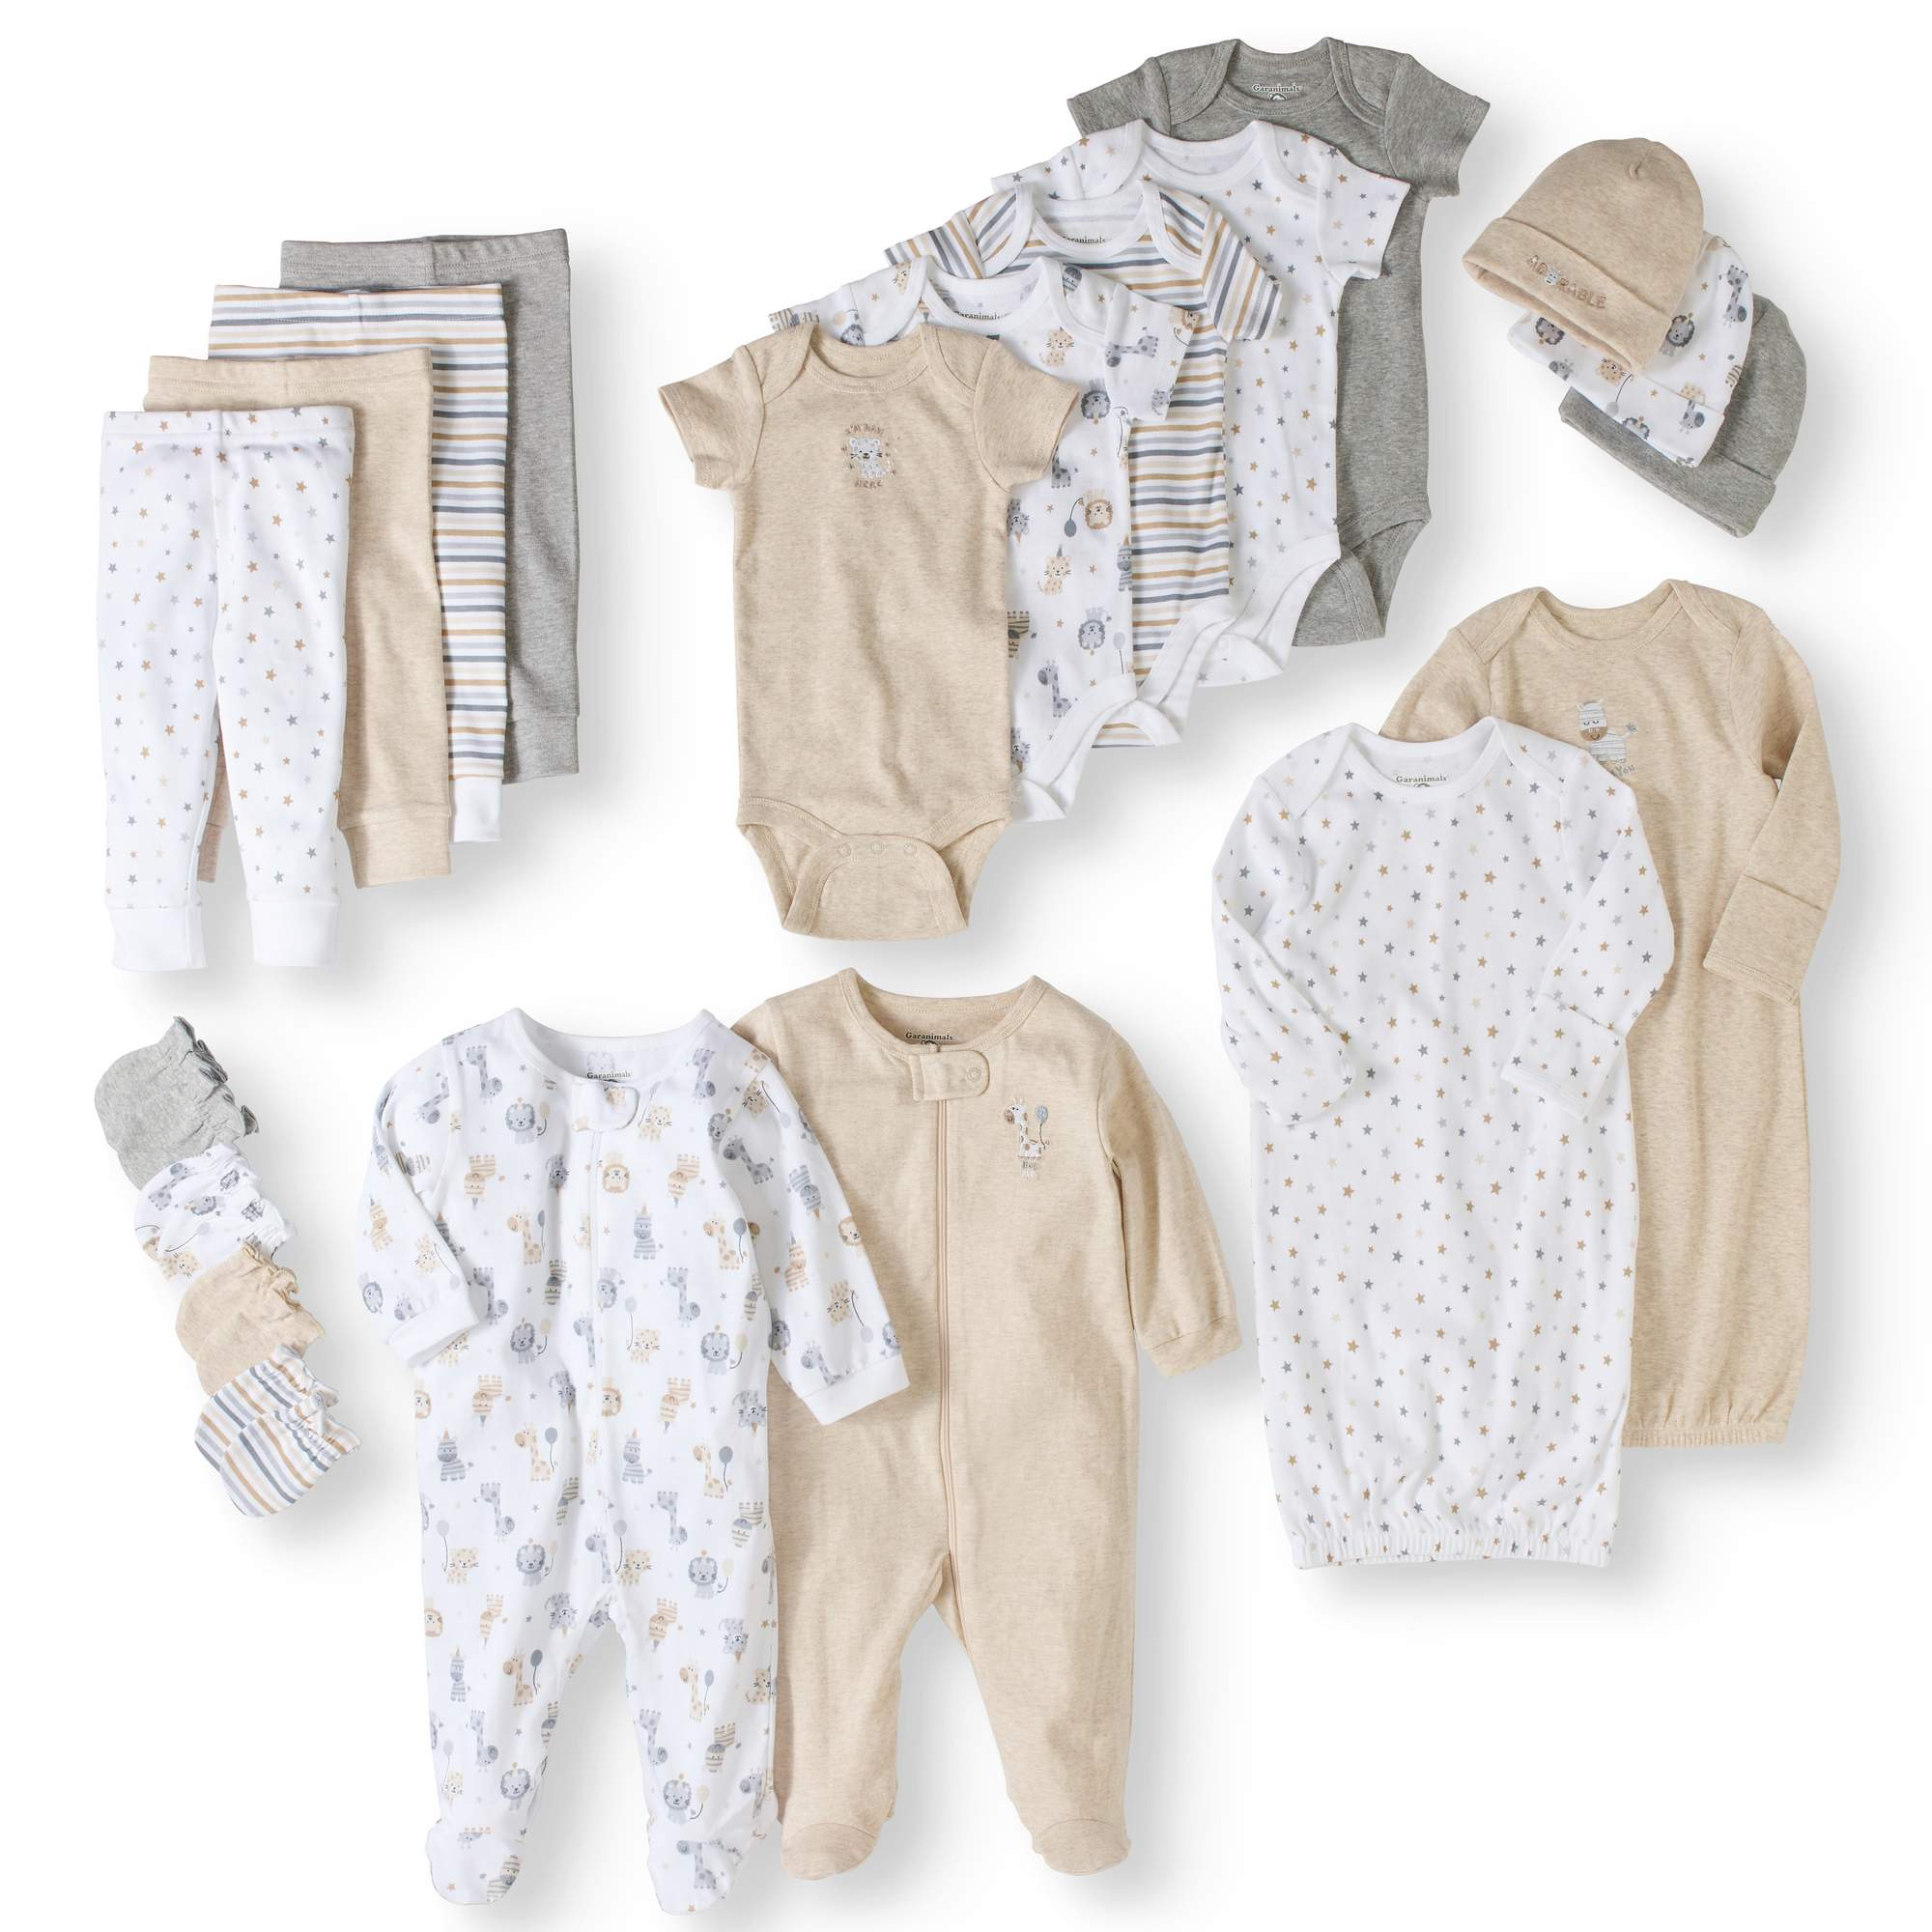 Click here to buy Garanimals Newborn Baby Boy or Girl Unisex 20 Piece Layette Baby Shower Gift Set.